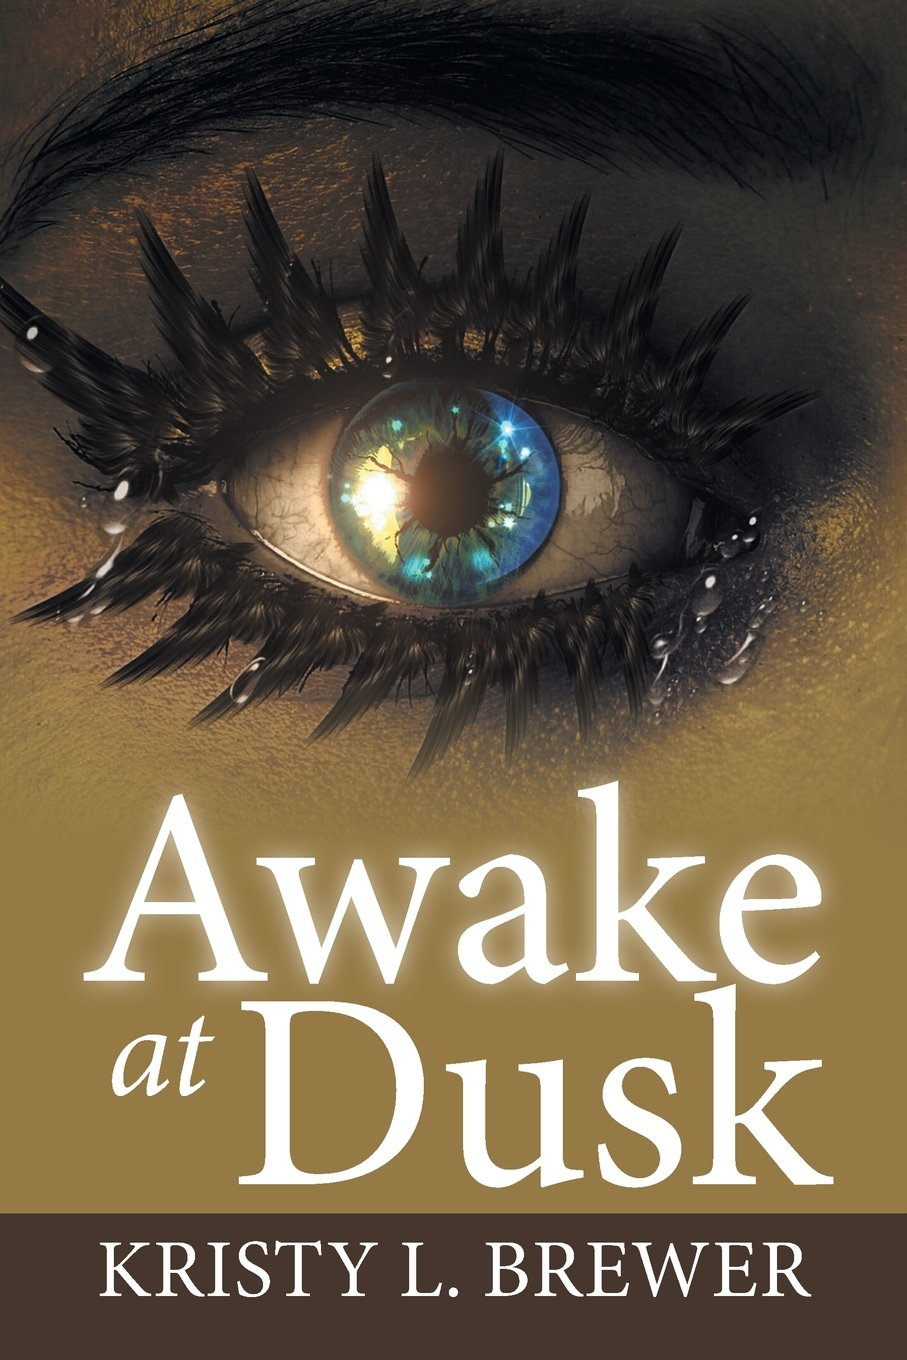 Awake at Dusk by Kristy L. Brewer